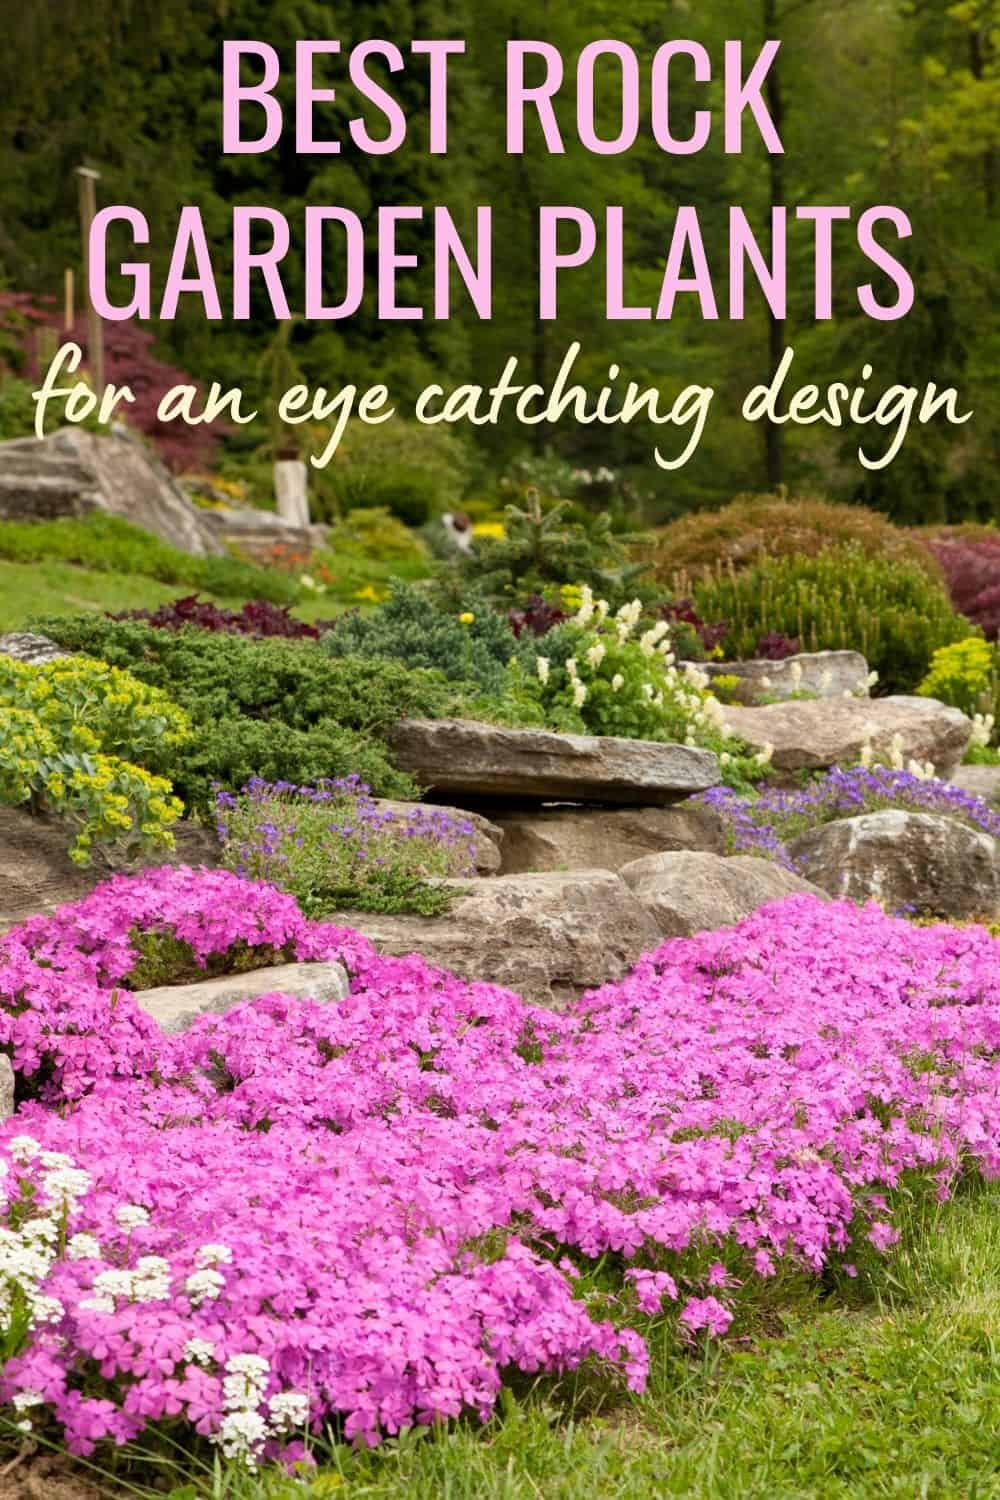 Best rock garden plants for an eye catching design